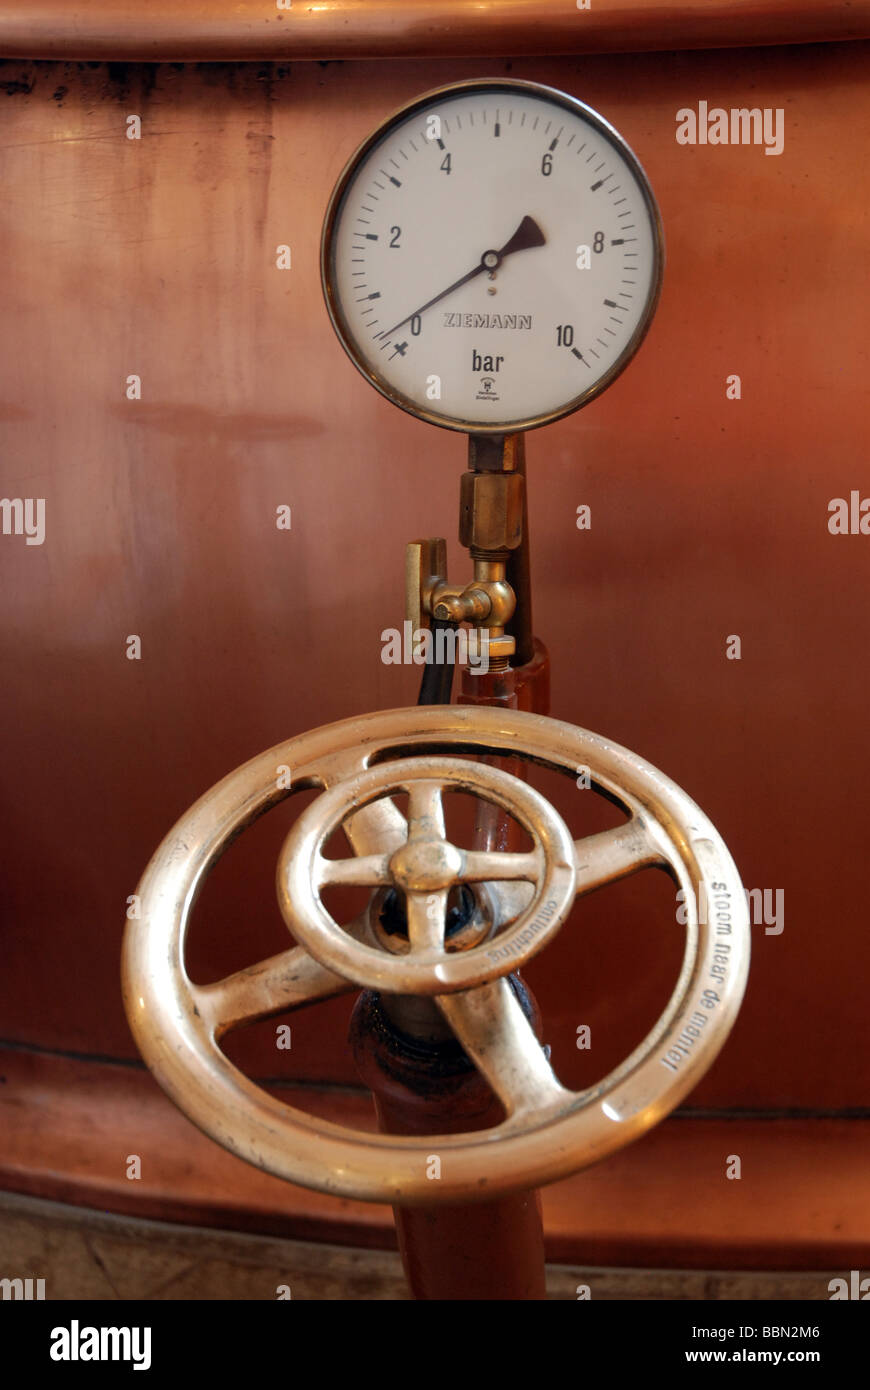 temperature gauge brass copper wheel valve amsterdam heineken - Stock Image